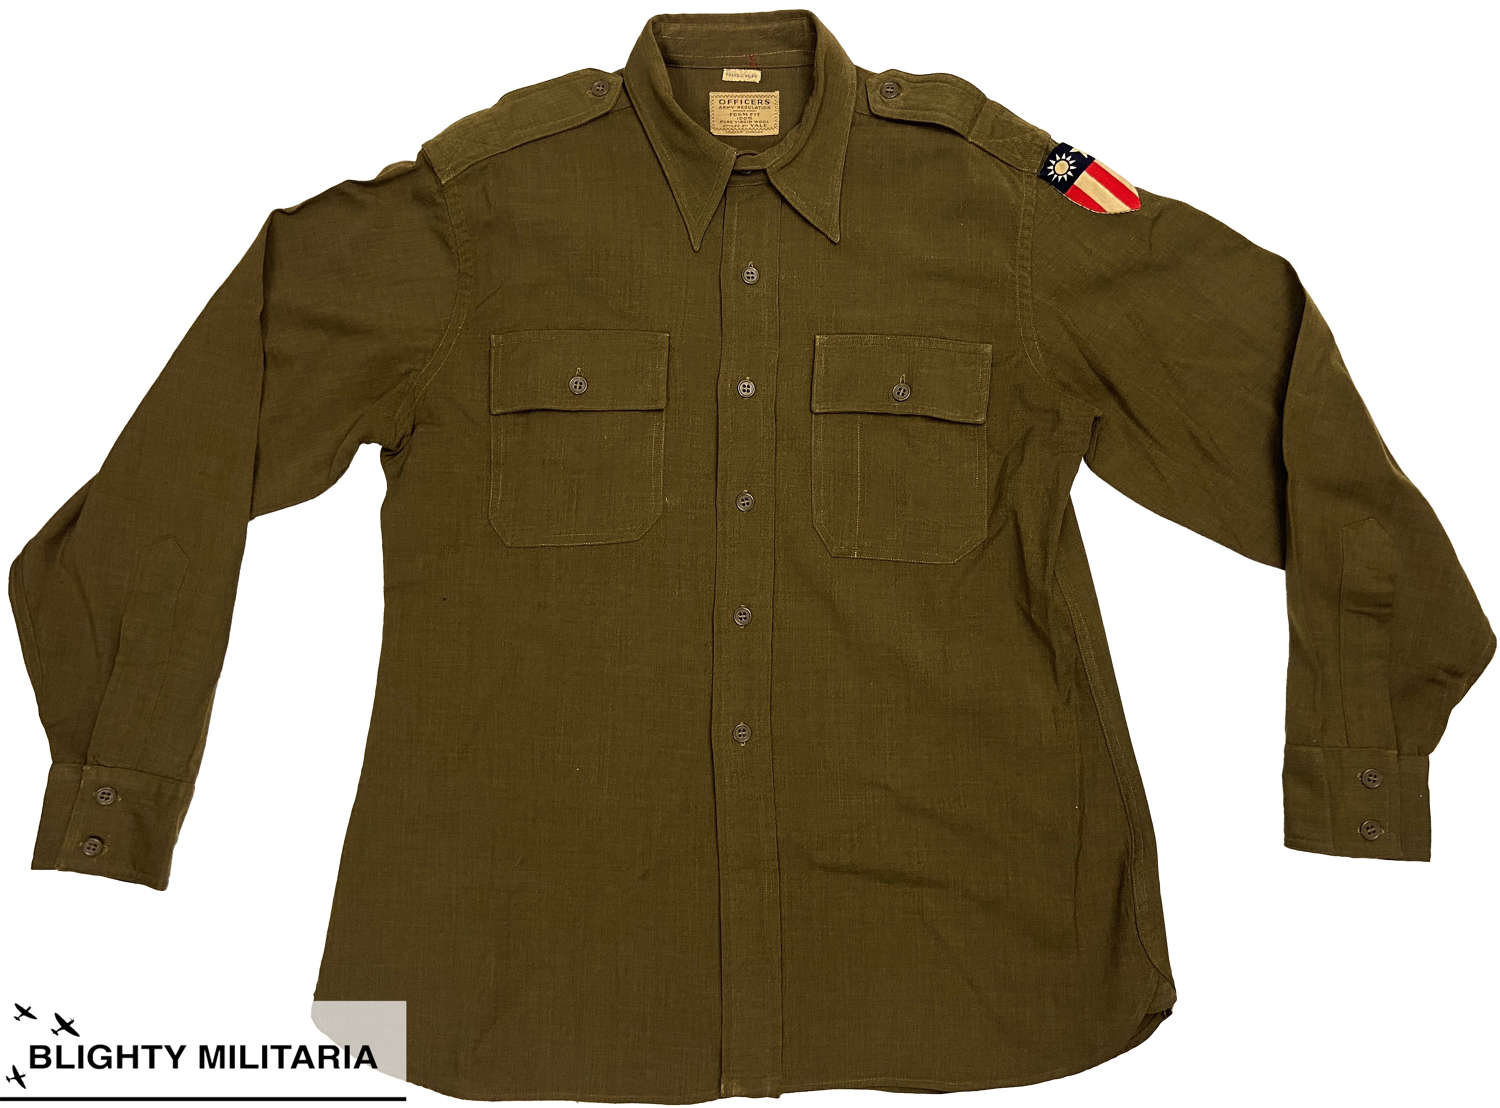 Original WW2 American Officers Shirt with C.B.I Patch